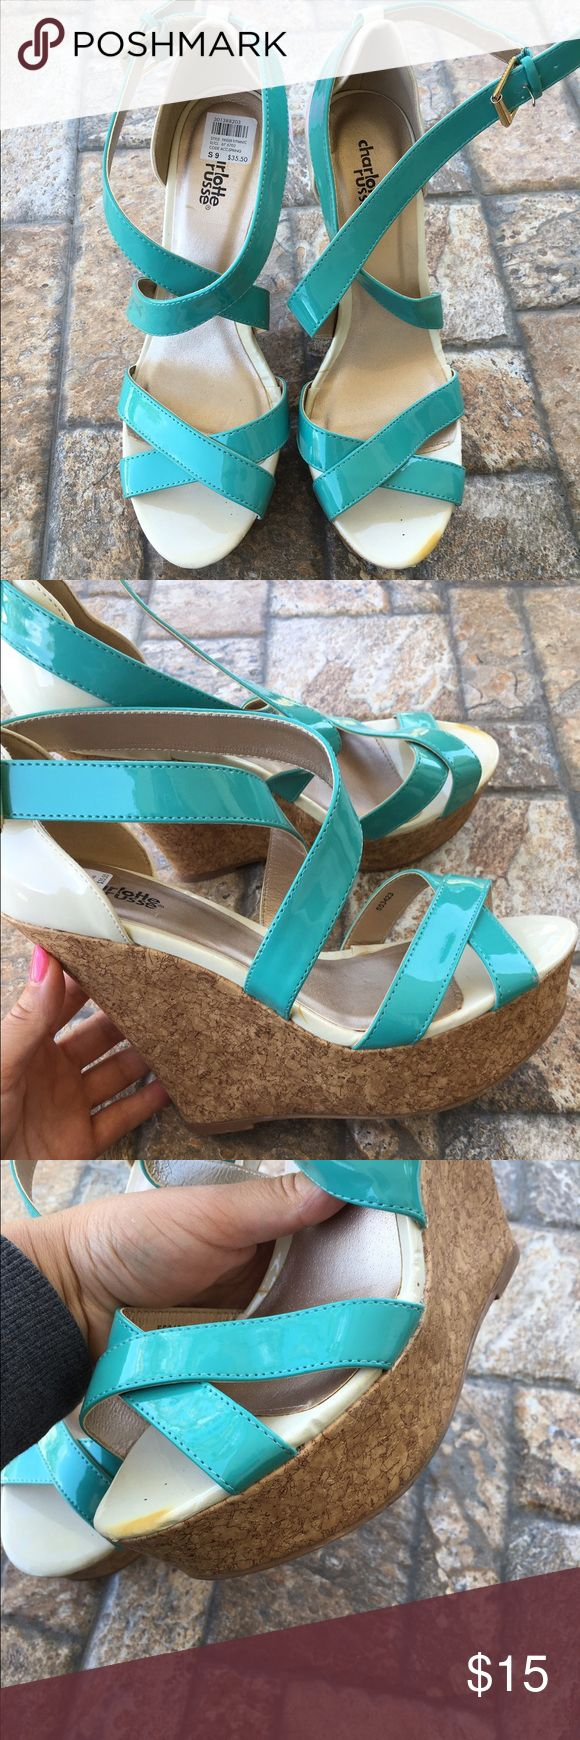 NEW Strappy turquoise wedges Teal blue cork board strappy wedges. Brand new as you can see from the soles. These are be perfect summer heels. Size 9.  ✮ Condition:  New but there is a yellow mark at the toe as shown in the photos.  ✮ Closet Rules:  ⇢ NO SWAPS  ⇢ NO HOLDS  ⇢ PLEASE ASK FOR MEASUREMENTS ⇢ I WILL MODEL ANYTHING THAT FITS IF REQUESTED  ⇢ I USUALLY SHIP SAME OR NEXT BUSINESS DAY  #wedges #summer #bright #poolpartyheels #teal #turqouise #fauxpatentleather #corkboard #summerheels…